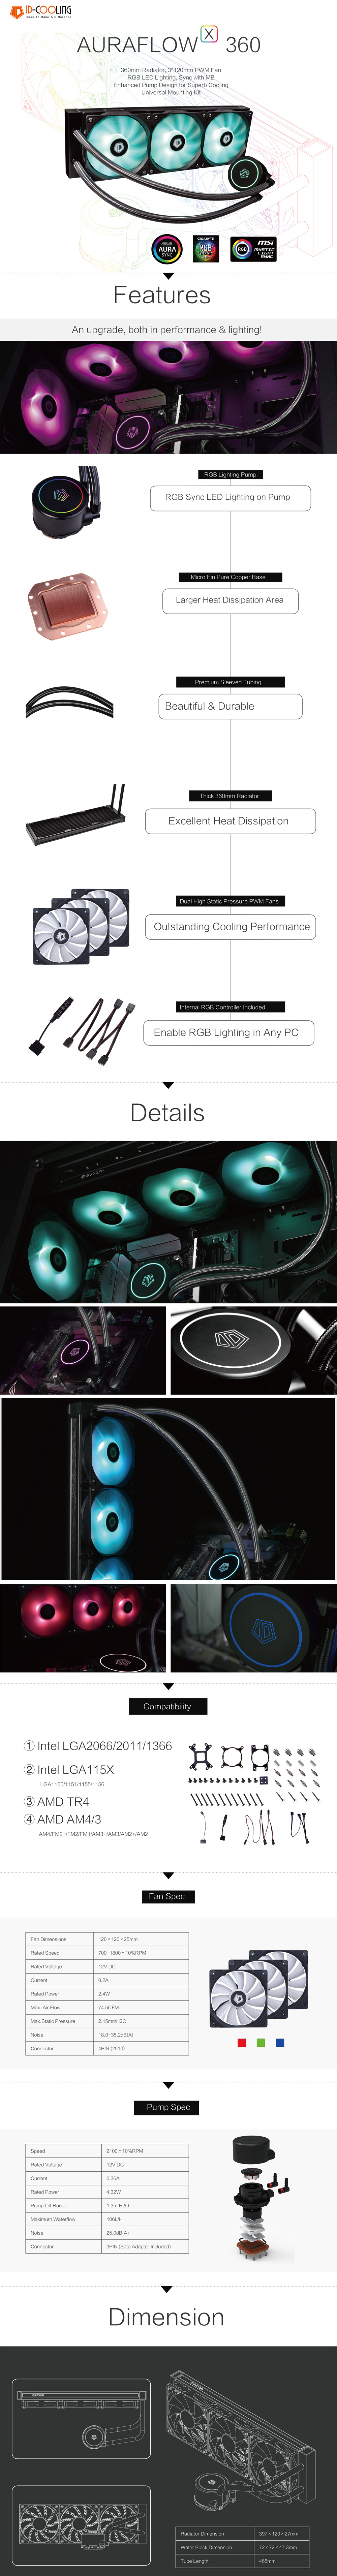 A large marketing image providing additional information about the product ID-COOLING AuraFlow X 360 RGB AIO CPU Liquid Cooler - Additional alt info not provided